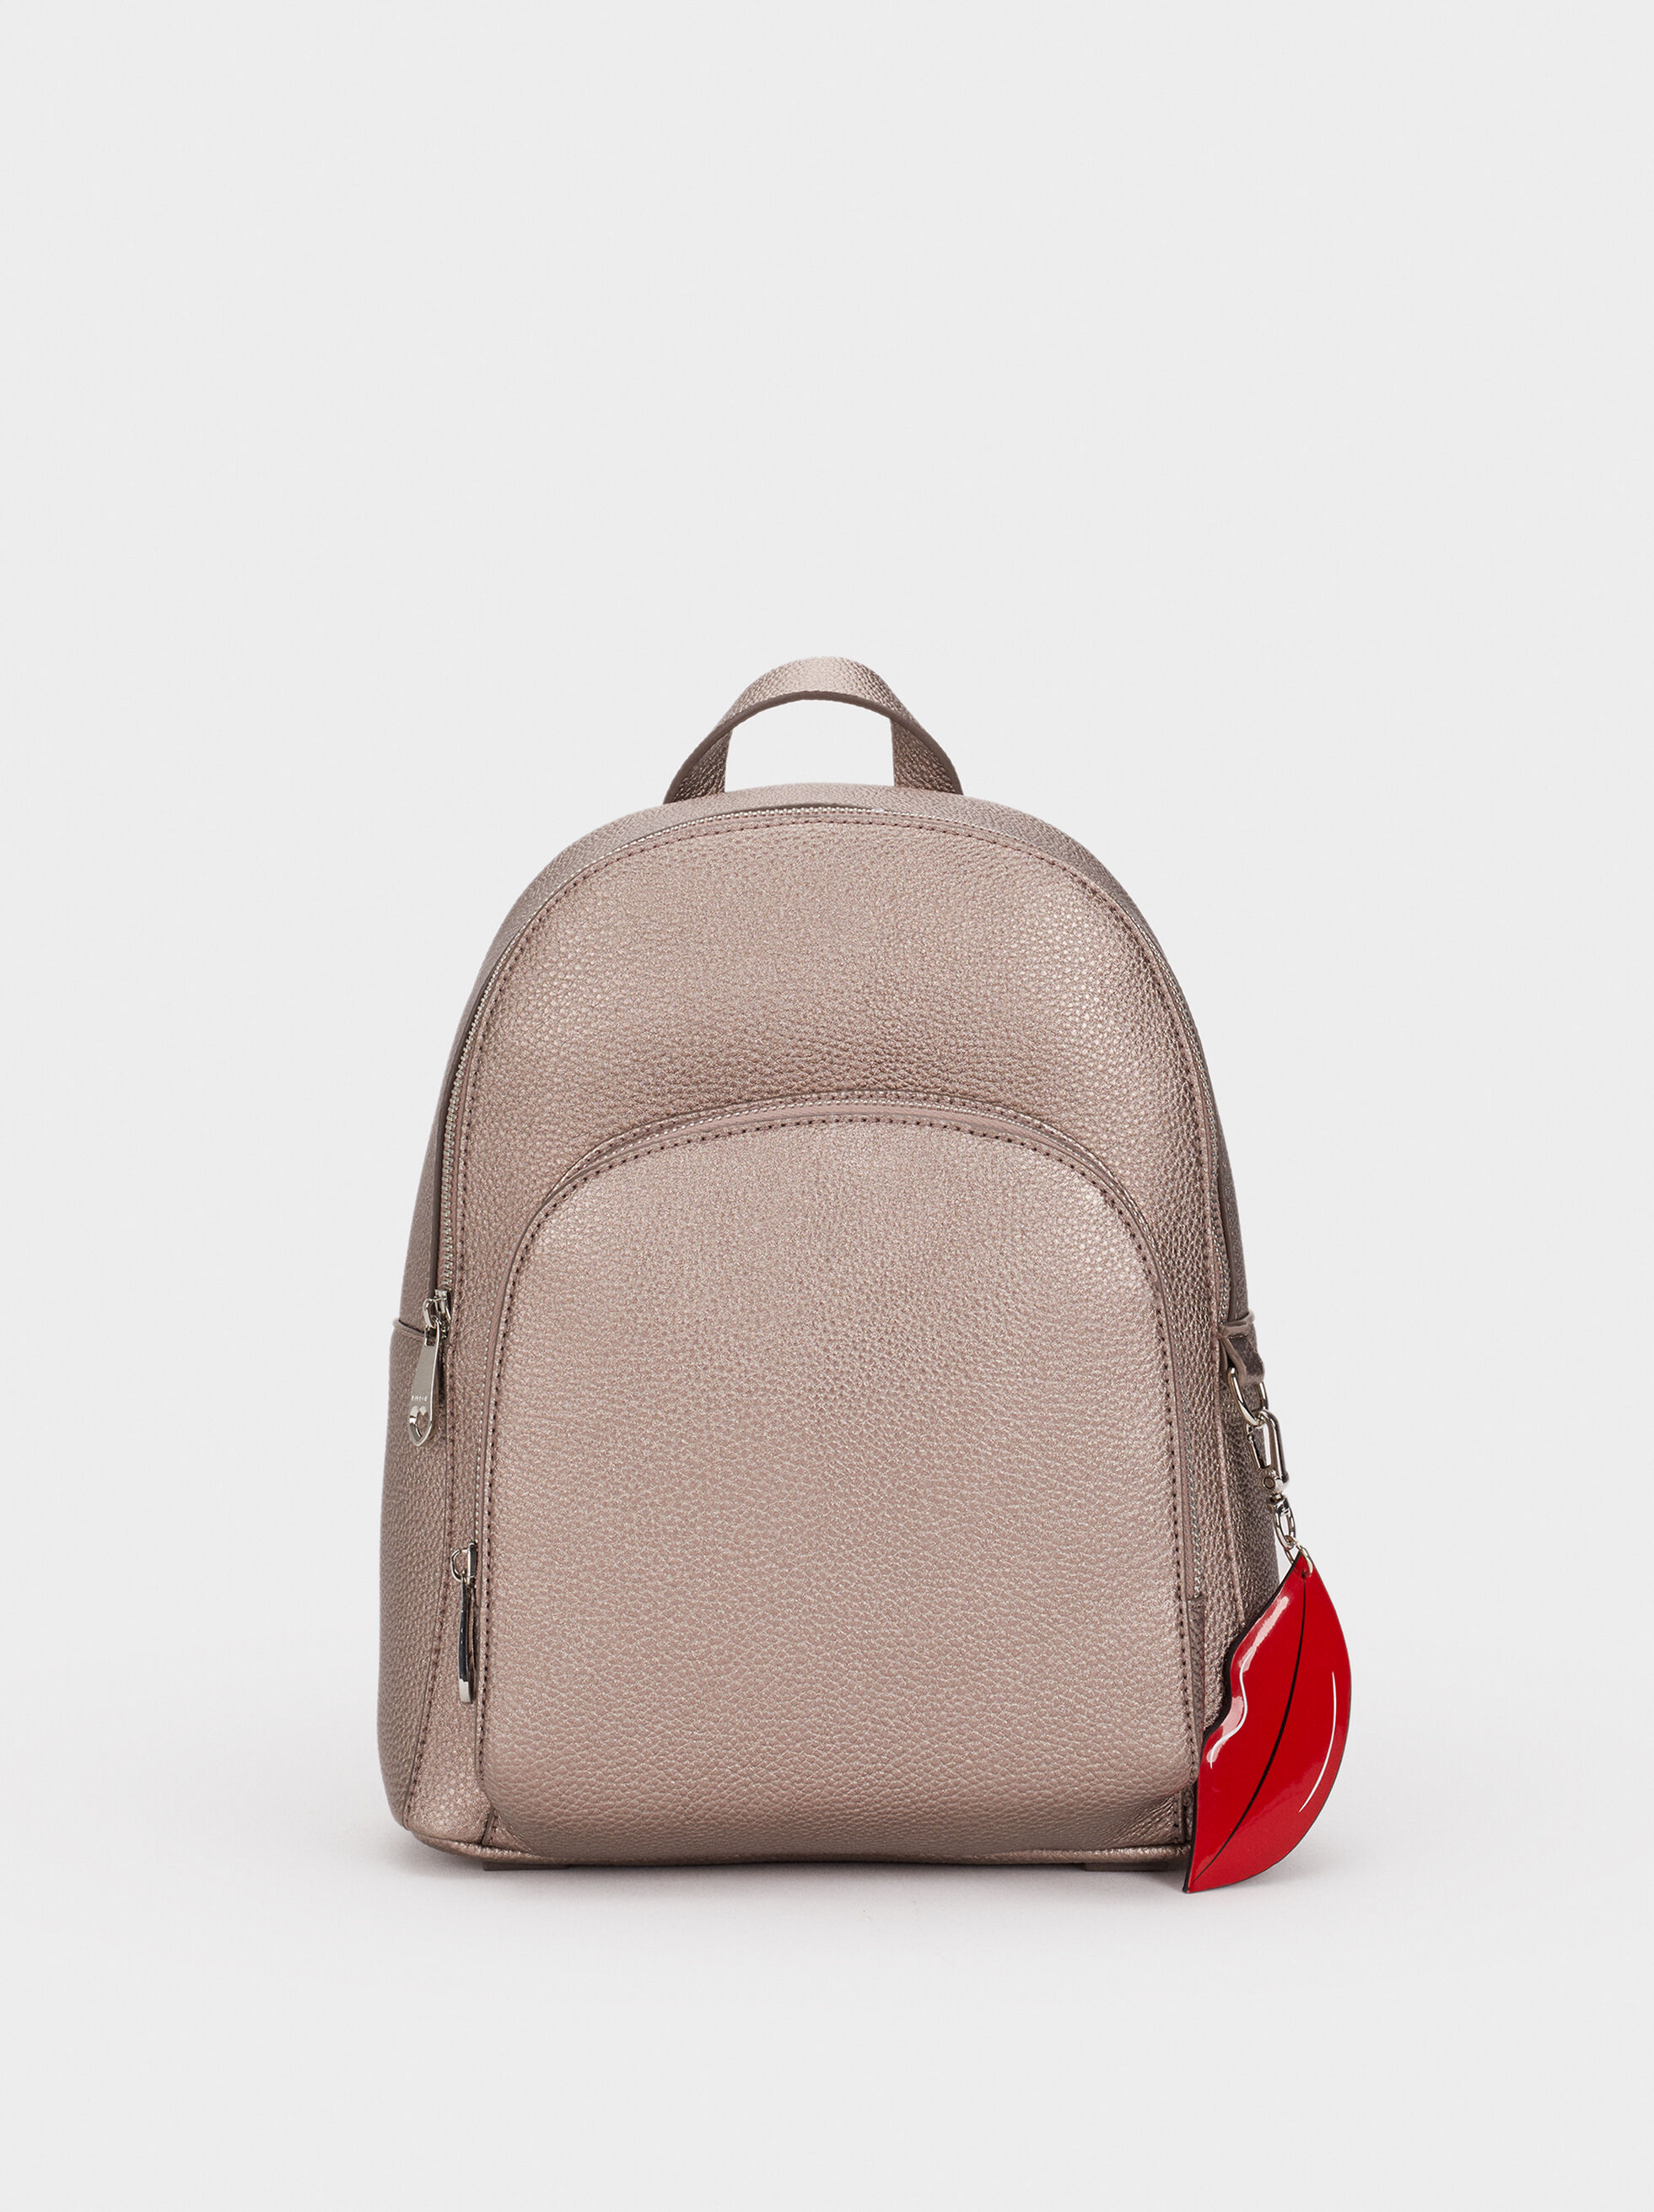 We Are Love Backpack, Silver, hi-res